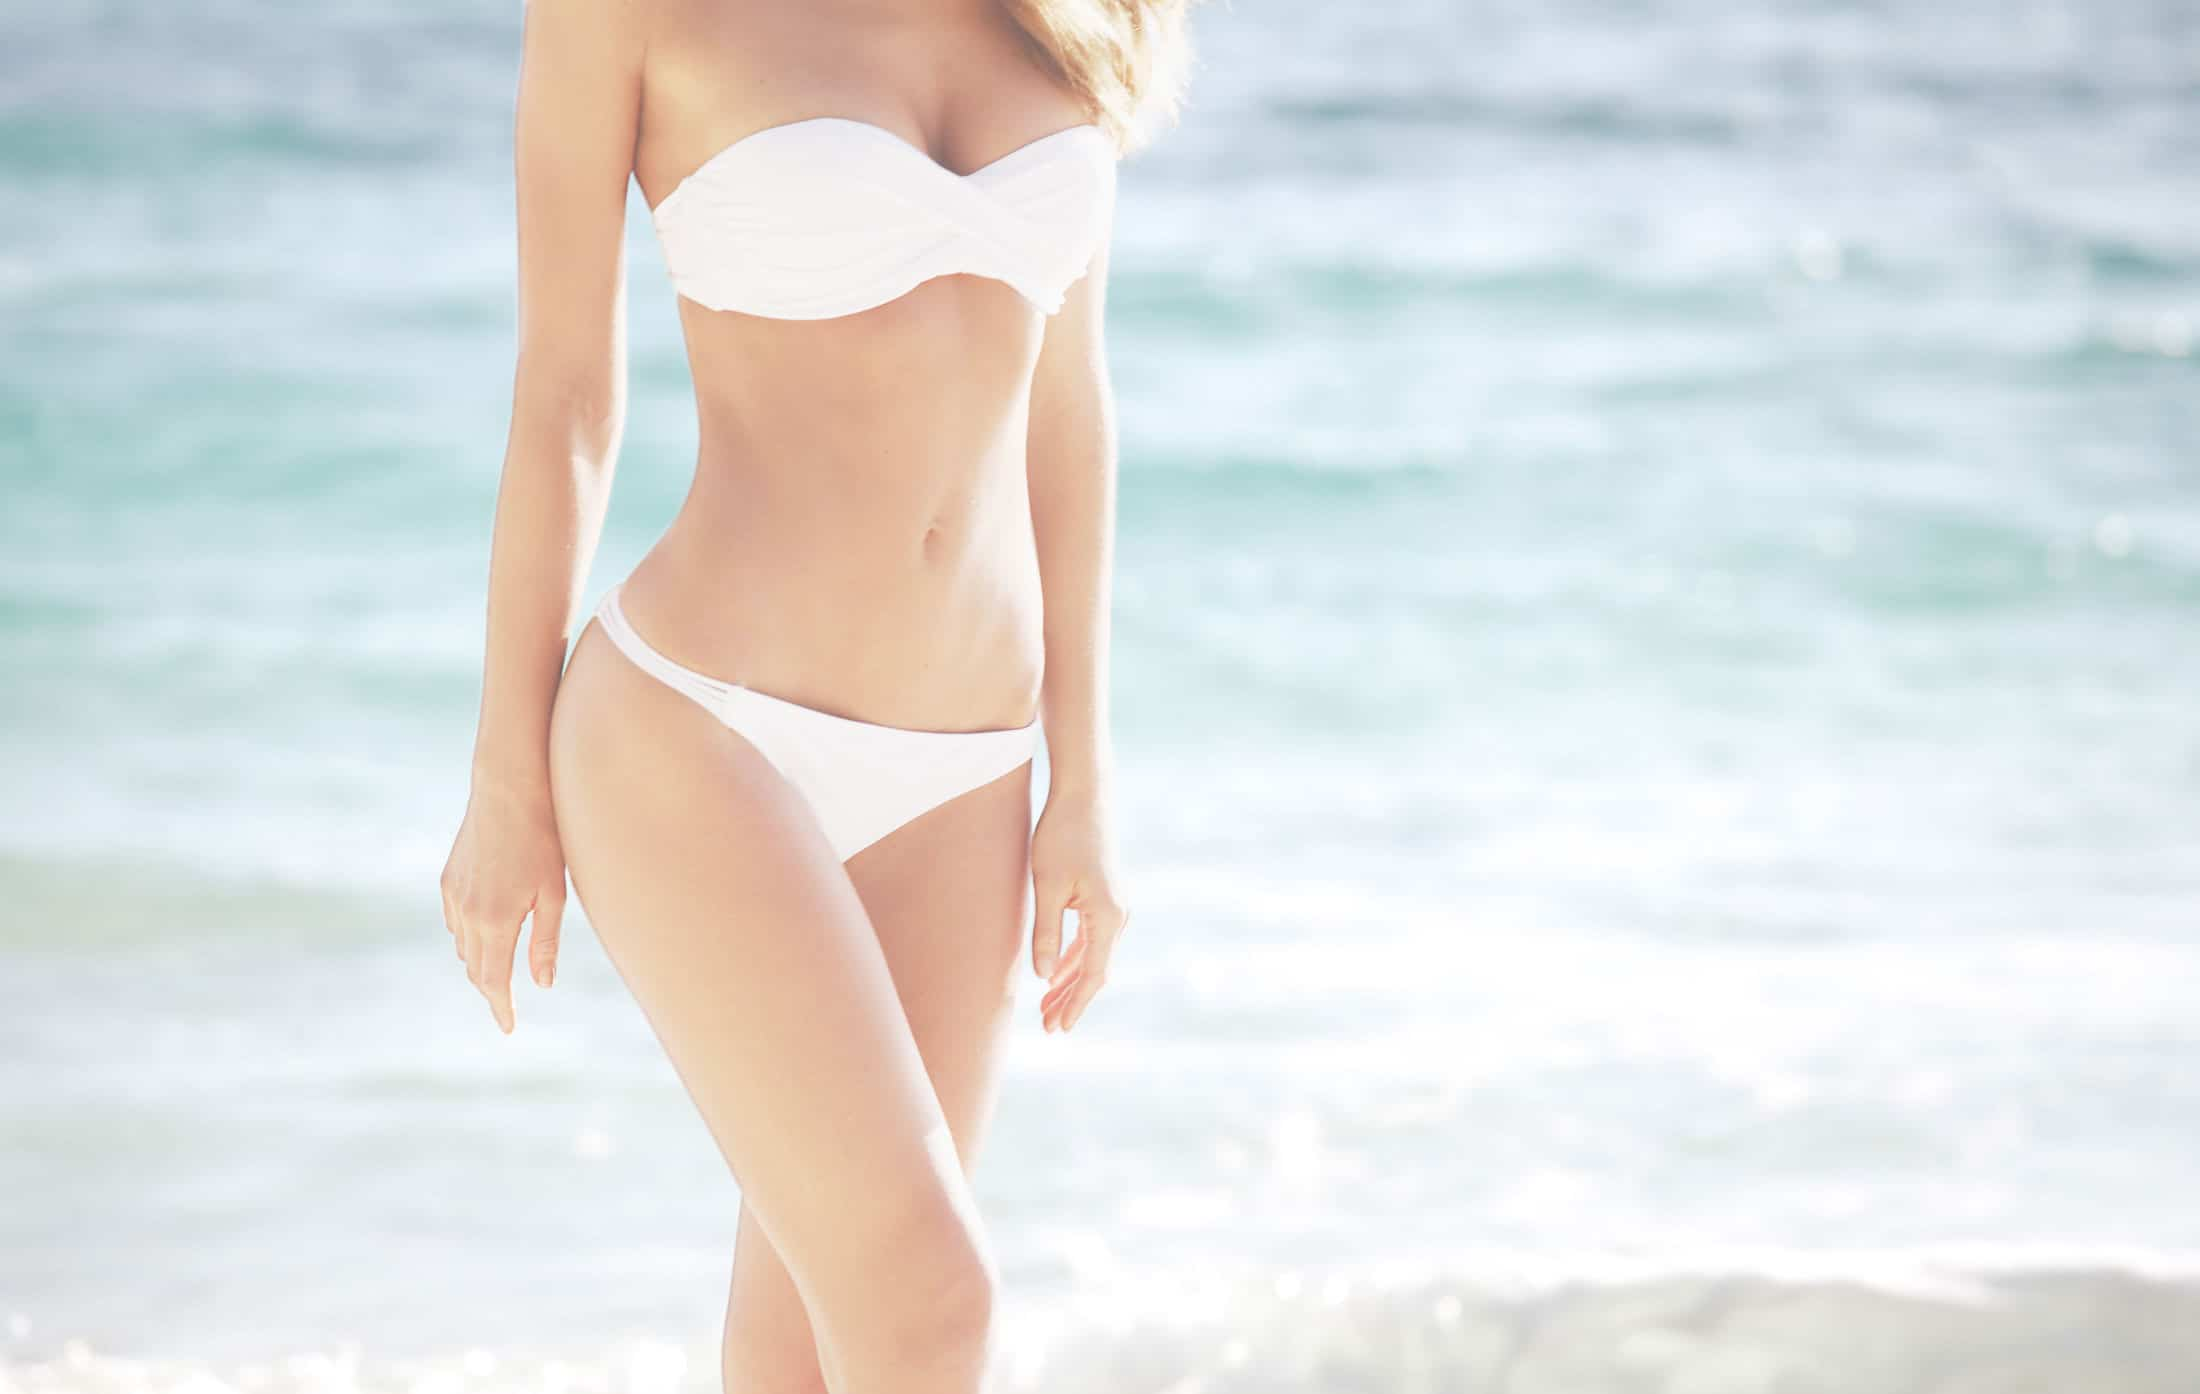 Beverly Hills Non-Surgical Body Cosmetic Treatments